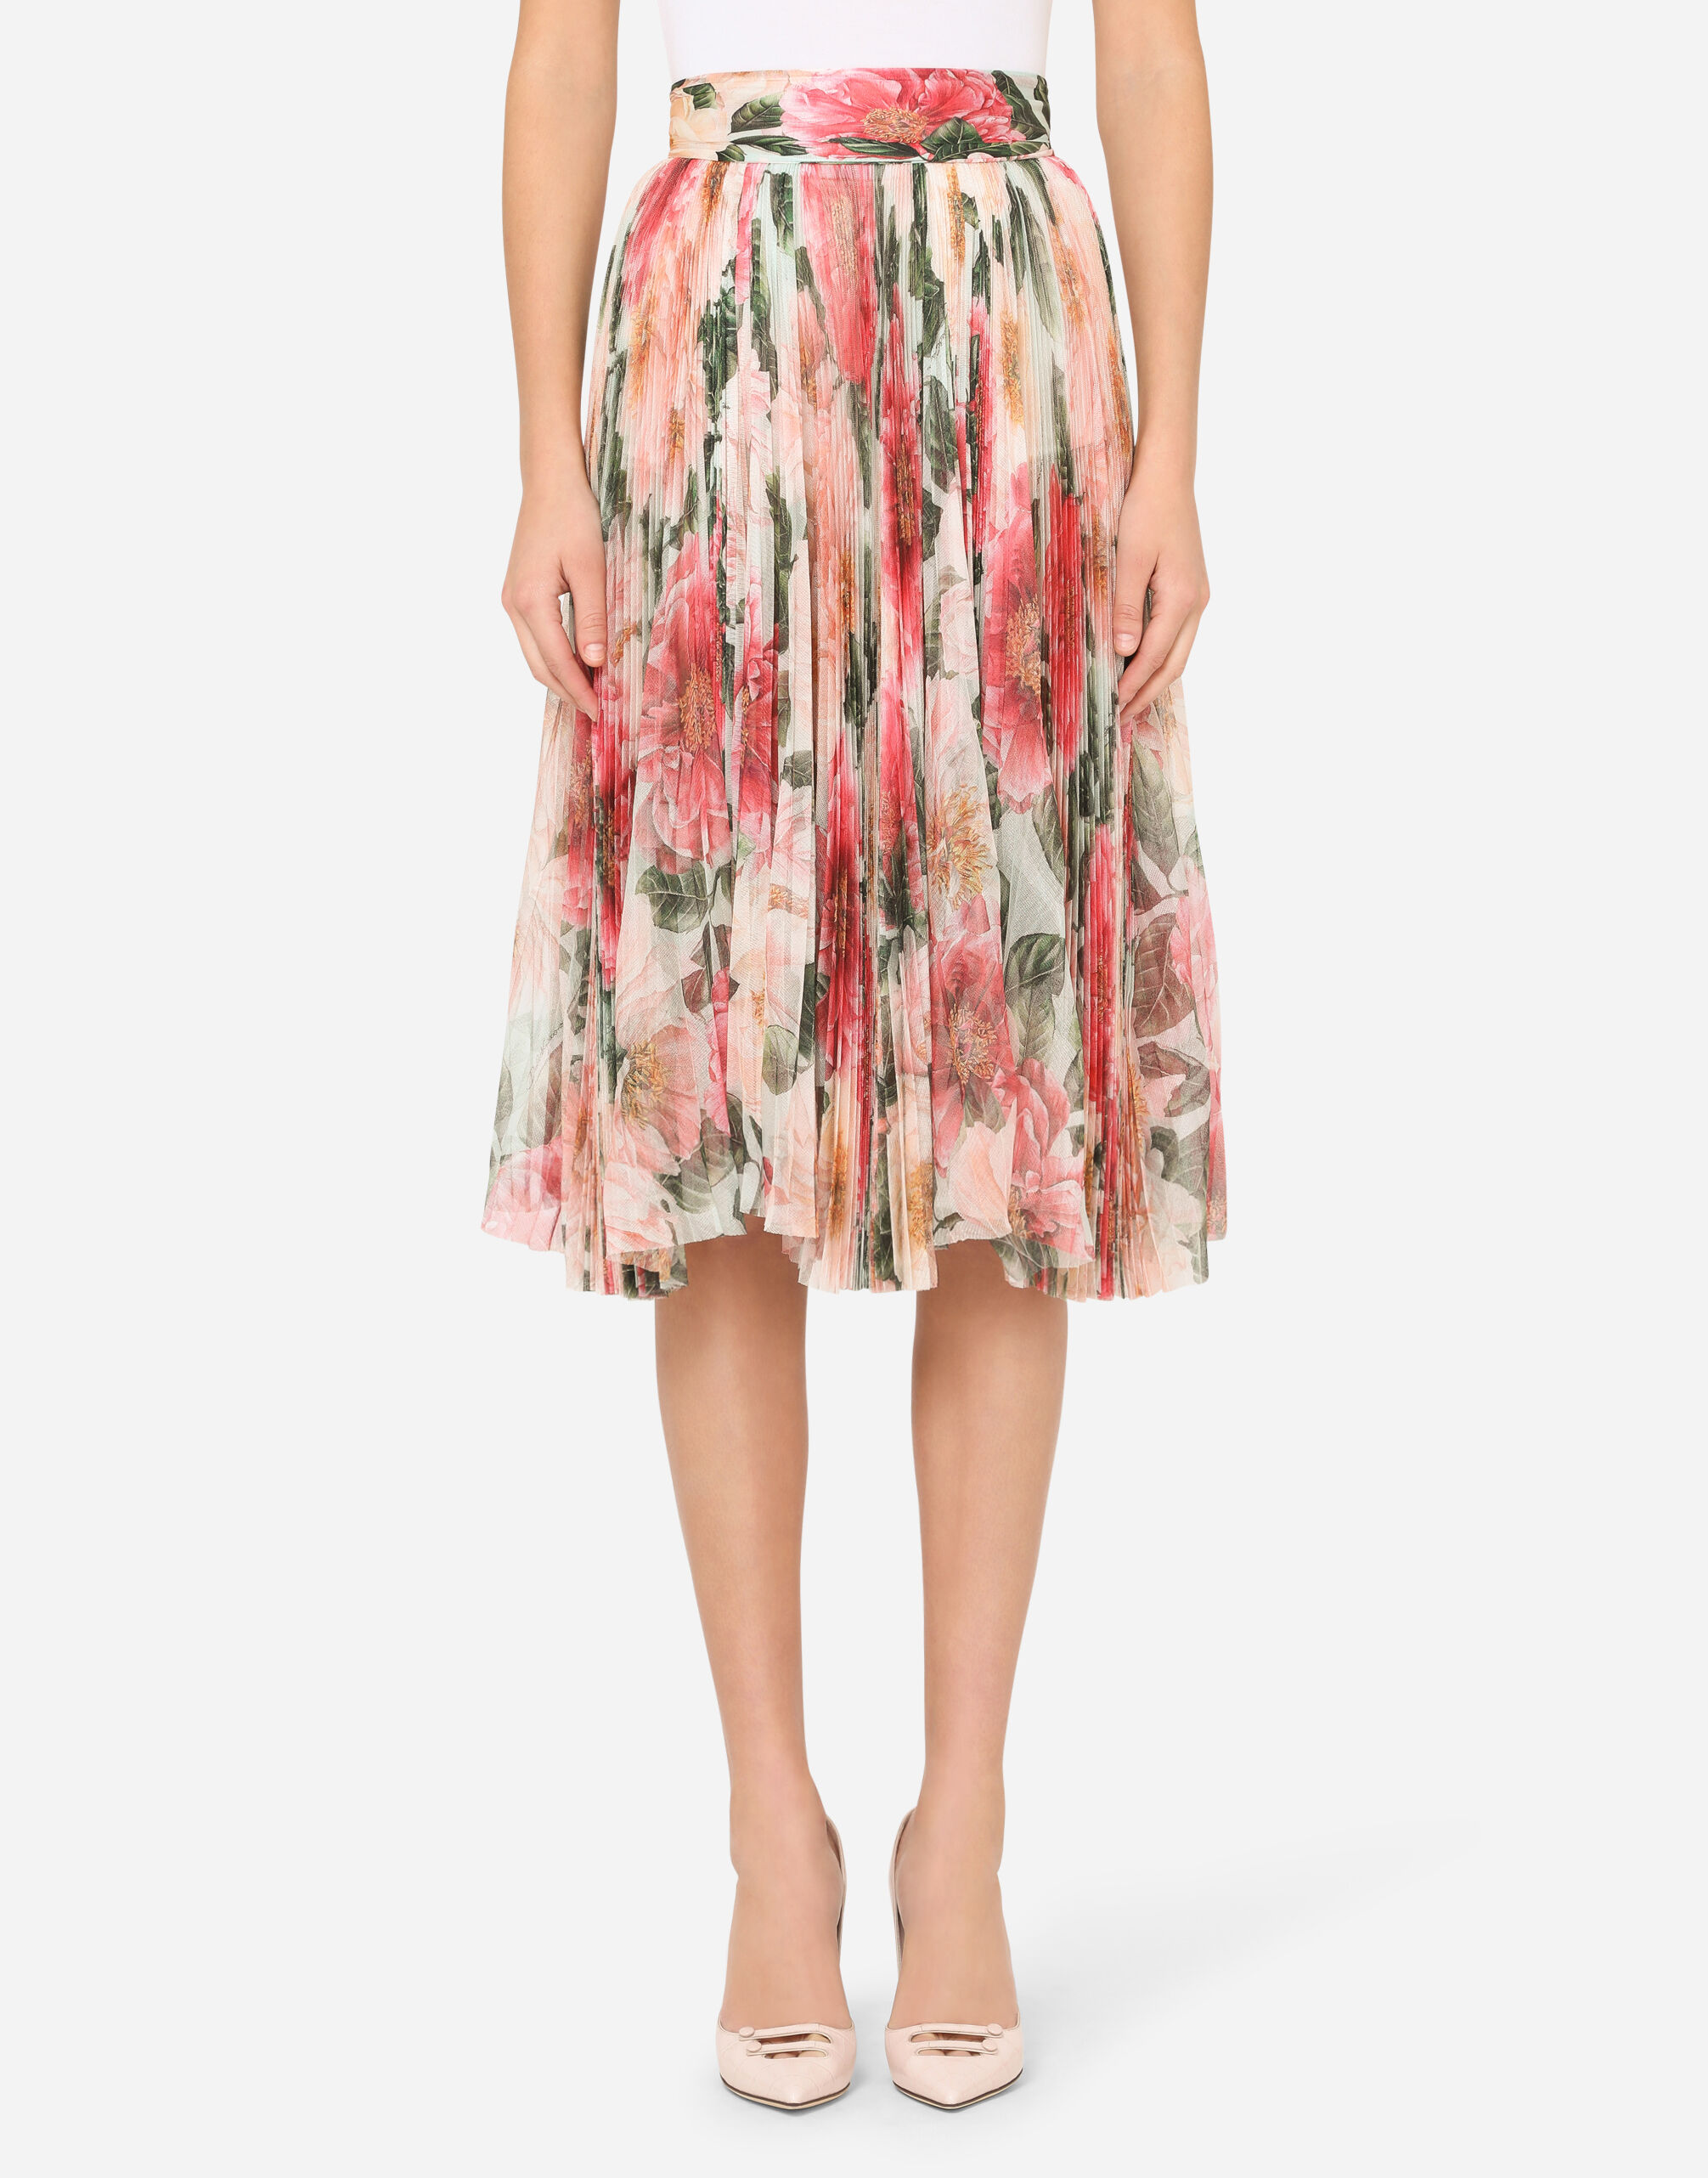 GONNA PLISSÉ MIDI IN TULLE STAMPA CAMELIE